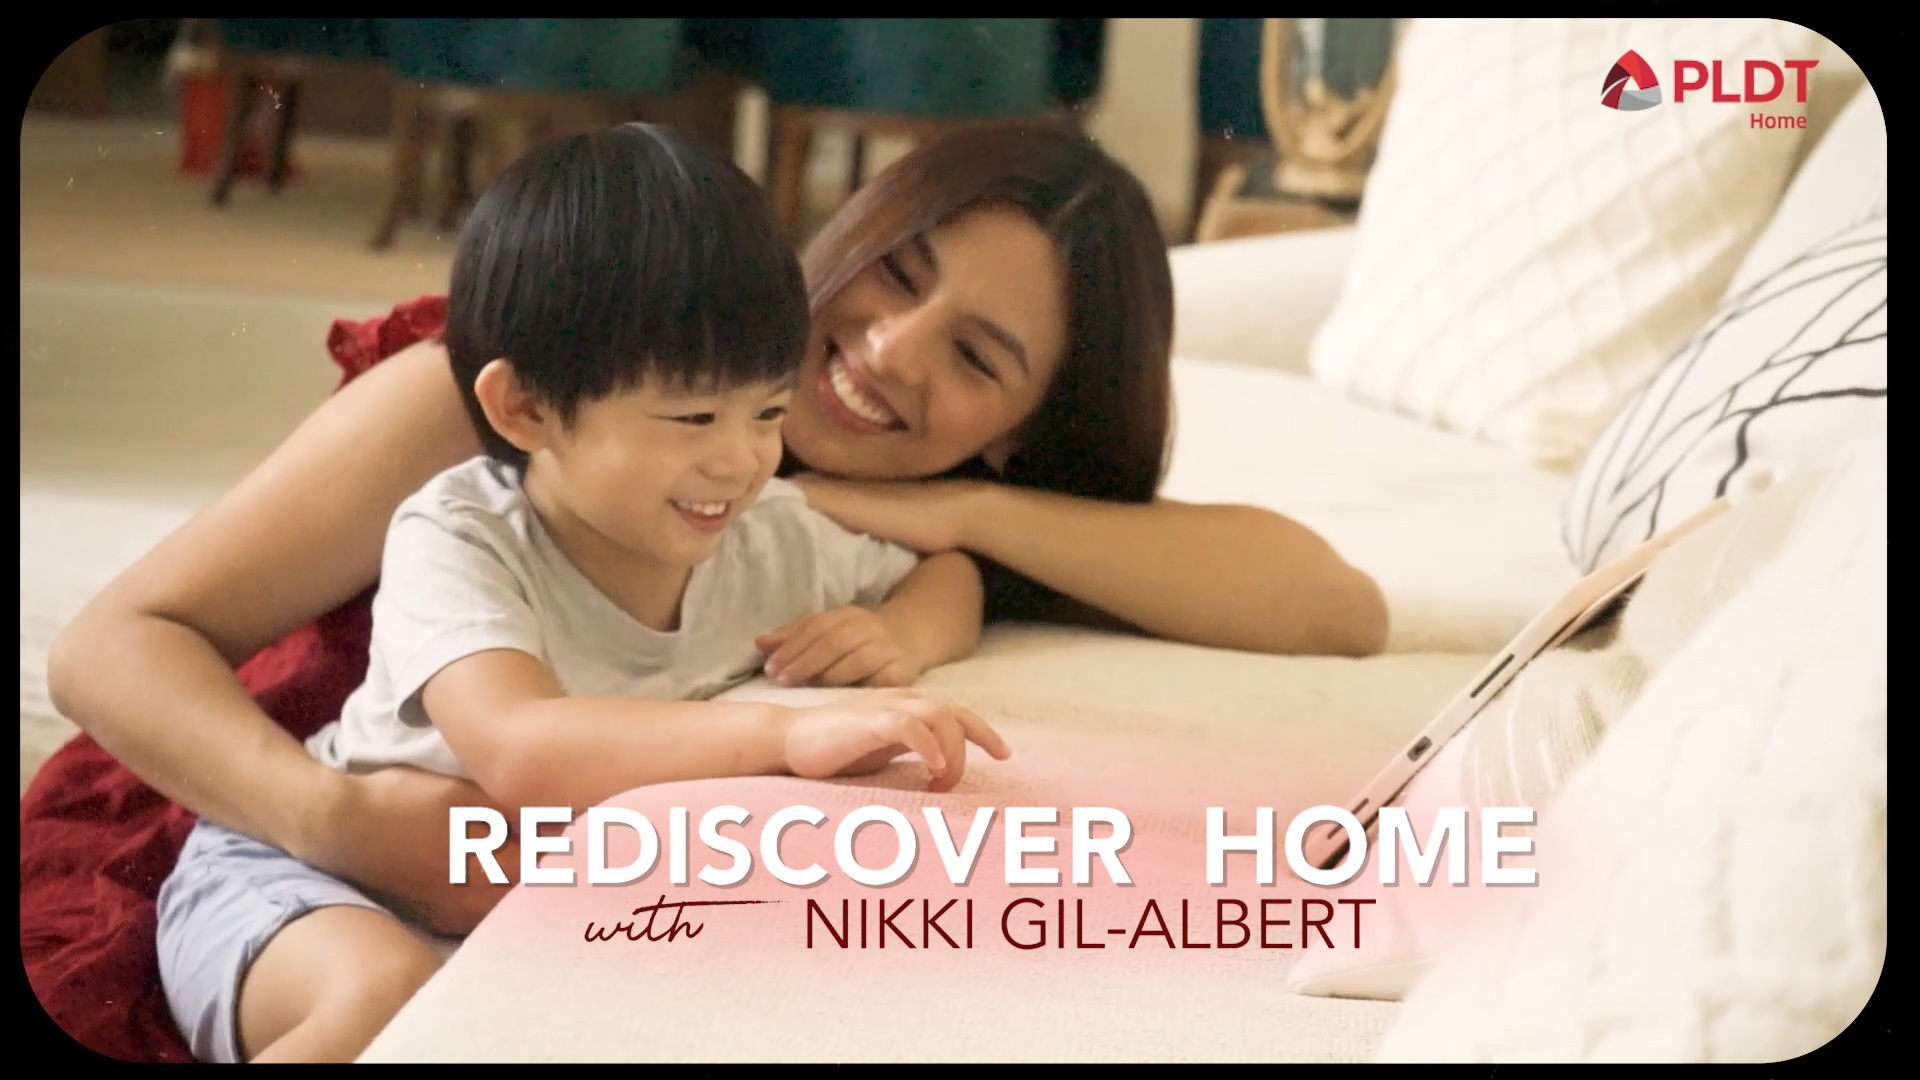 Celebrity mom Nikki Gil-Albert gives us a glimpse of her life at home